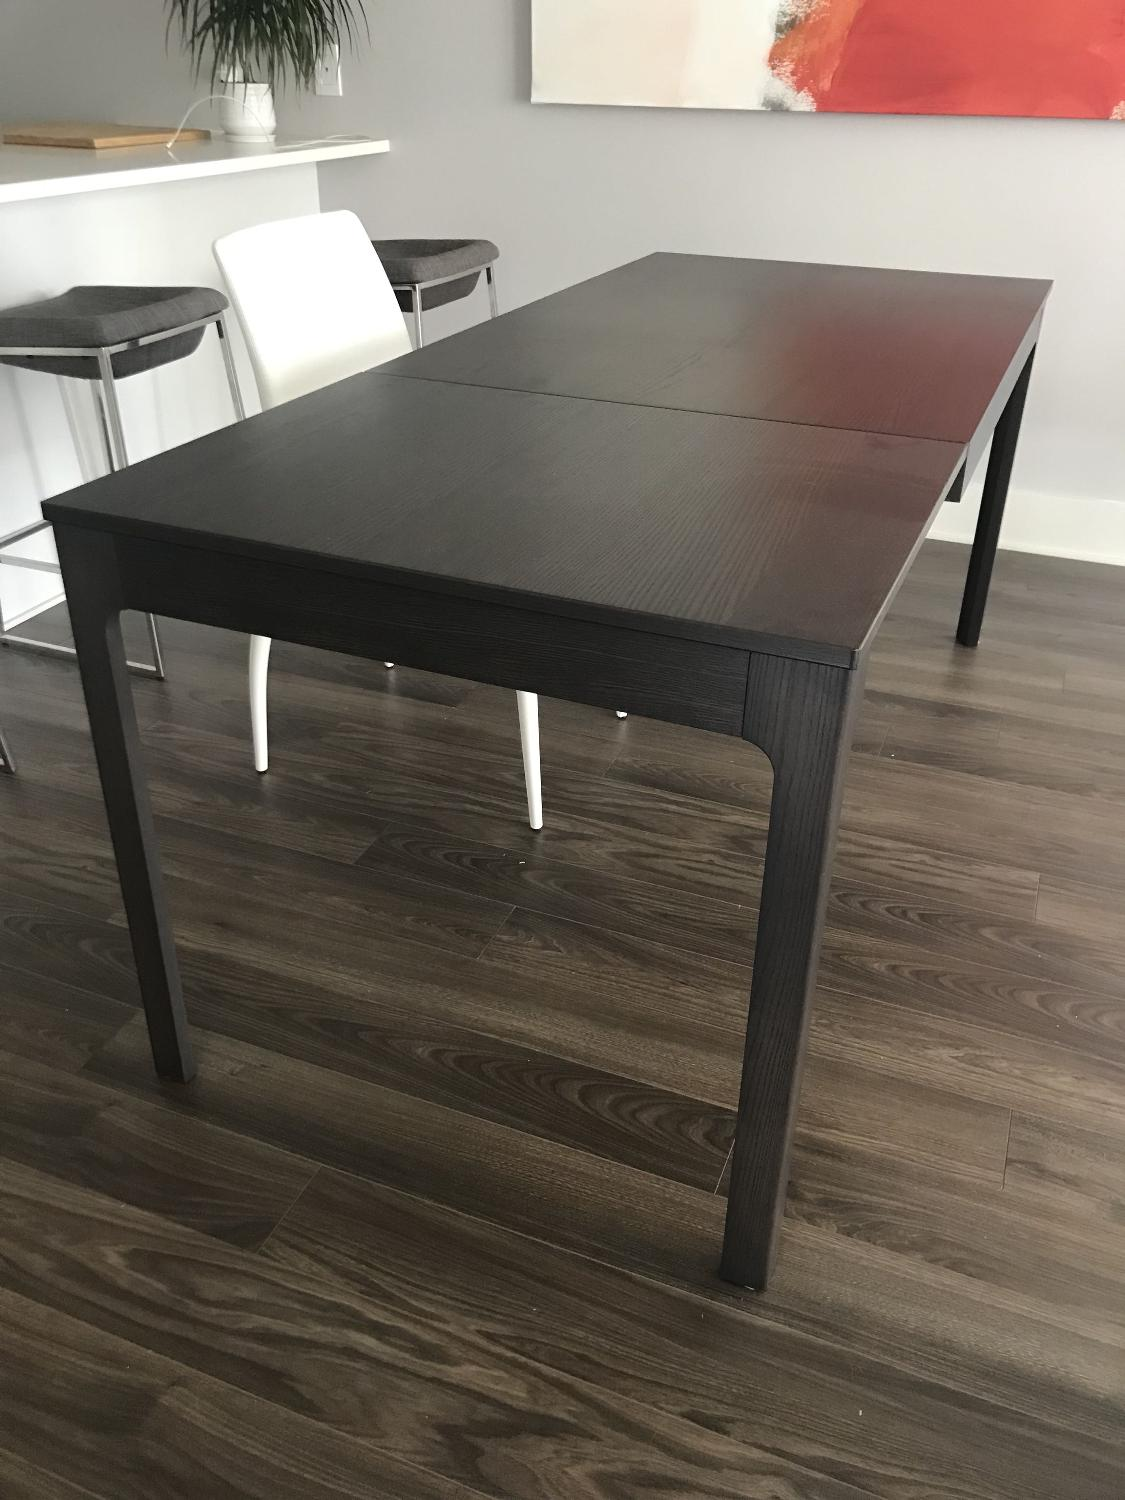 Find More Ikea Ekedalen Extendable Dining Table Dark Brown For Sale